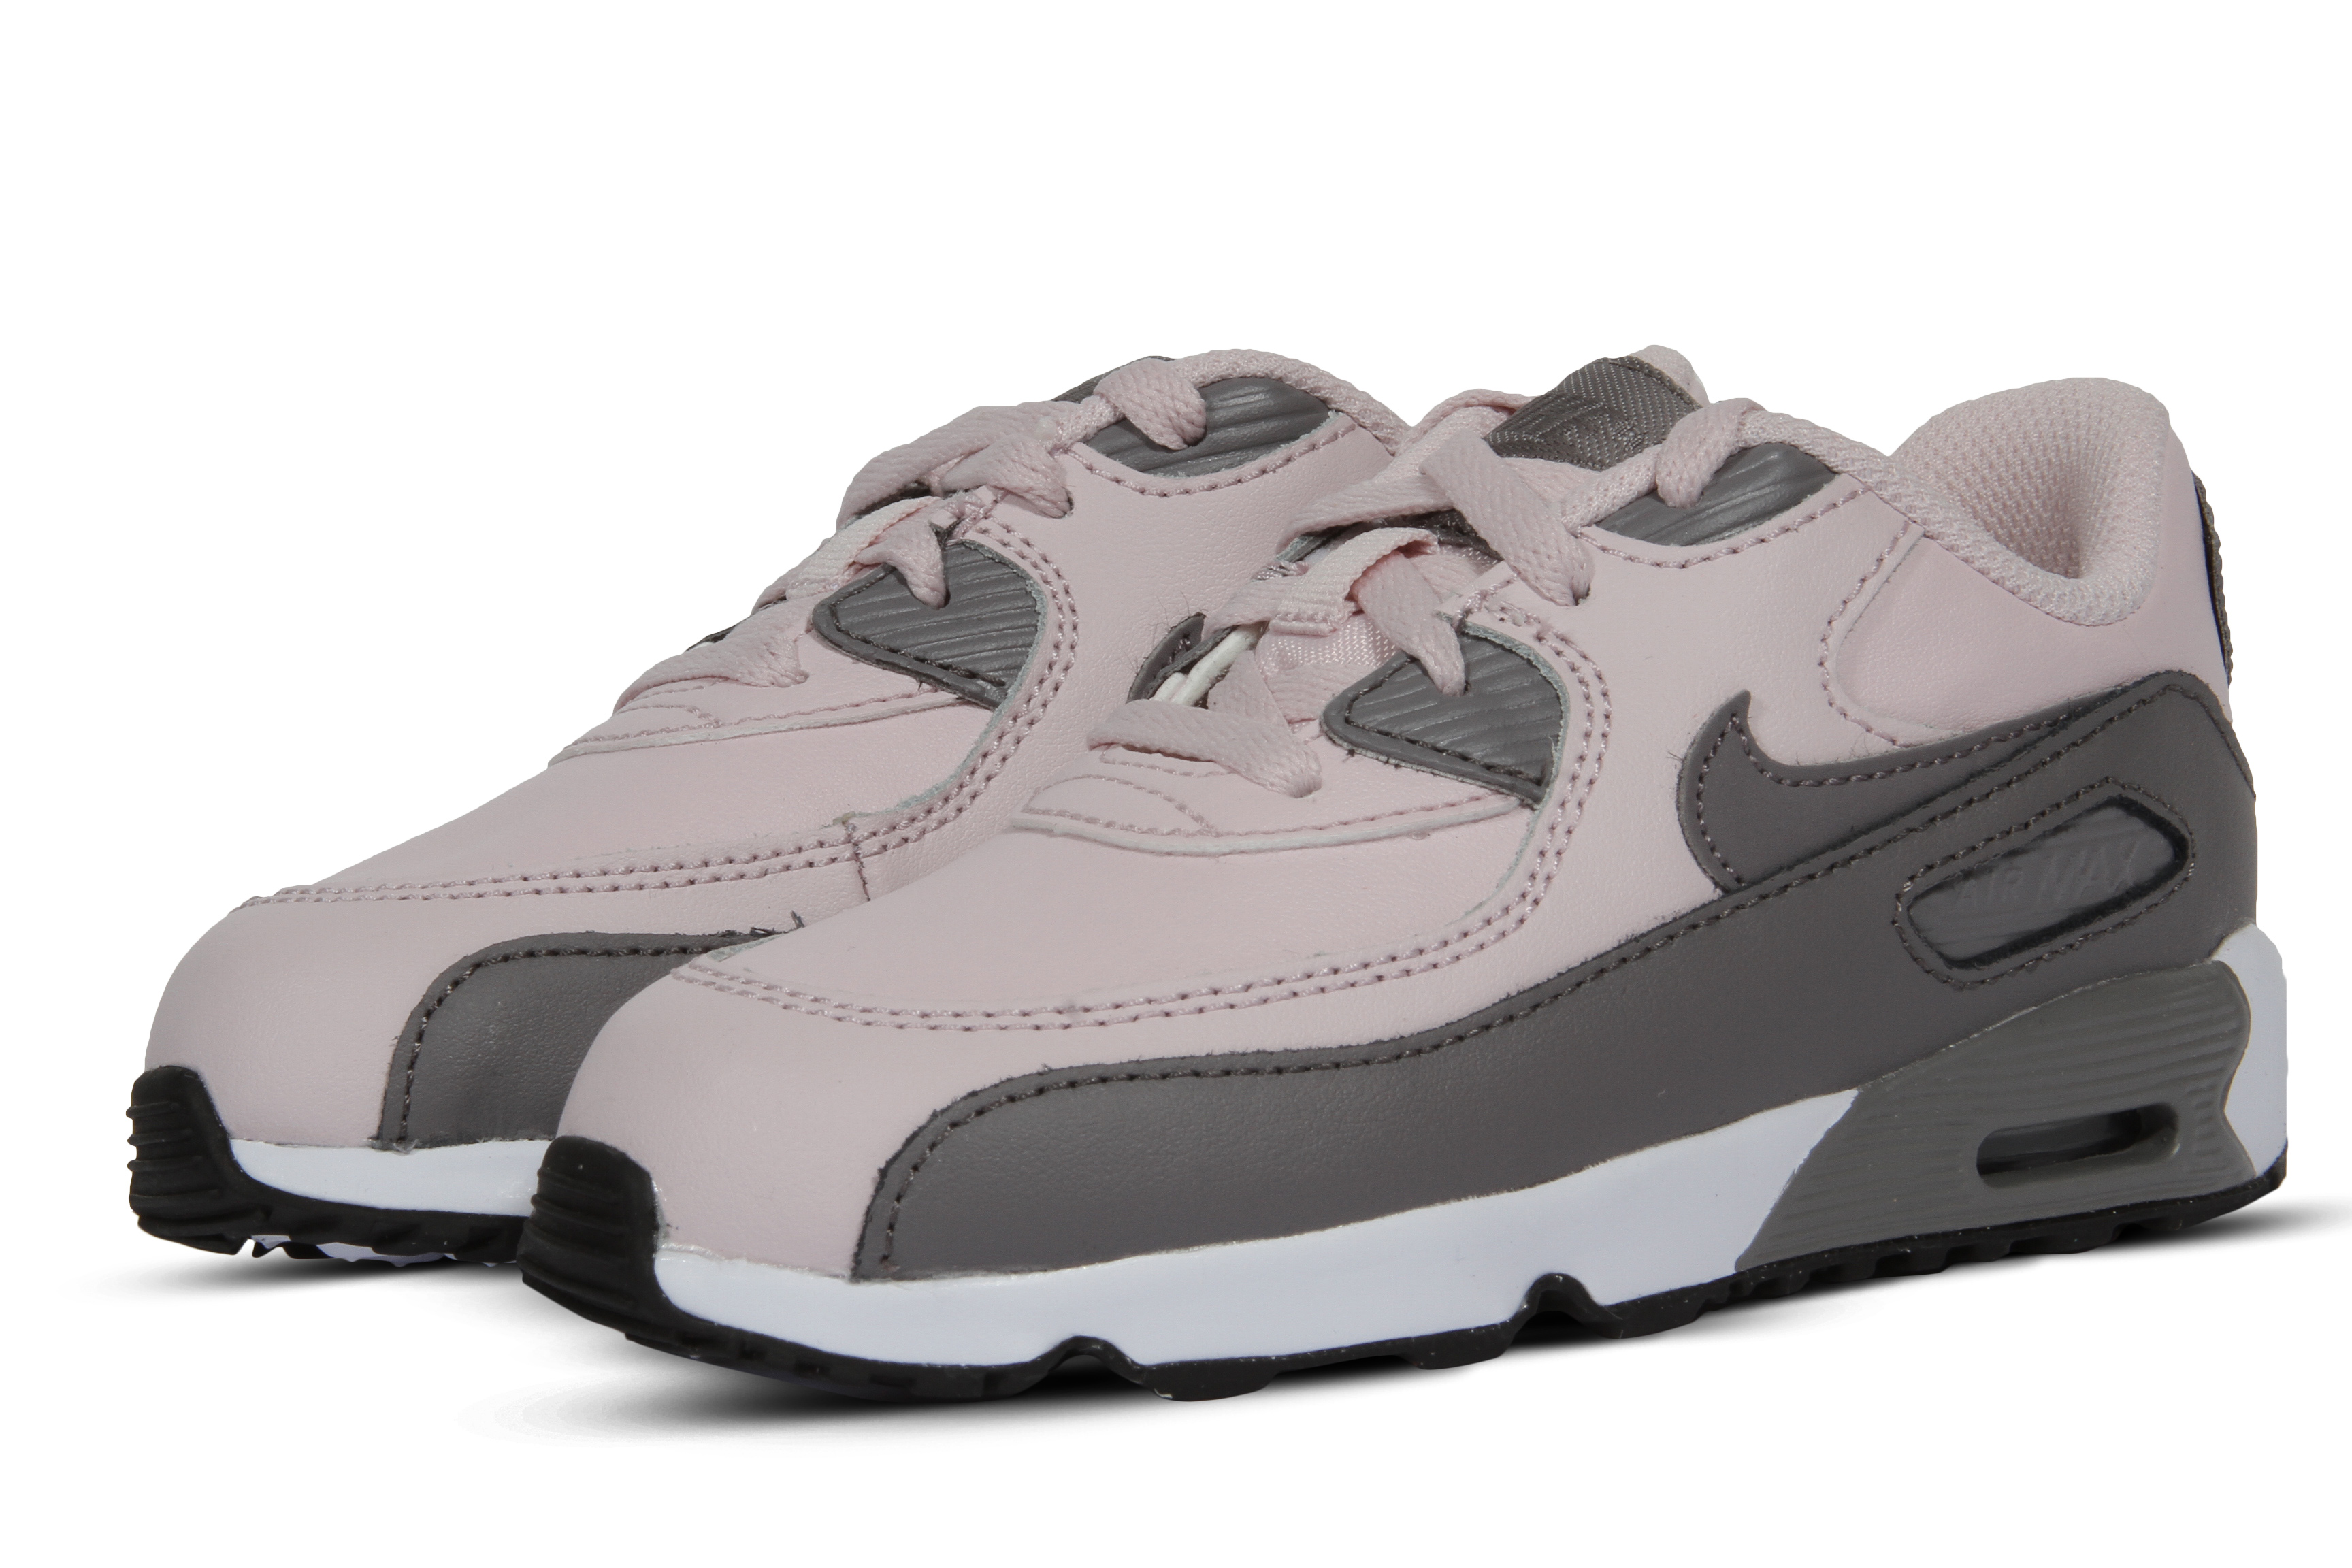 Nike Air Max 90 Leather TD Girl s Toddlers Baby Infant Shoes